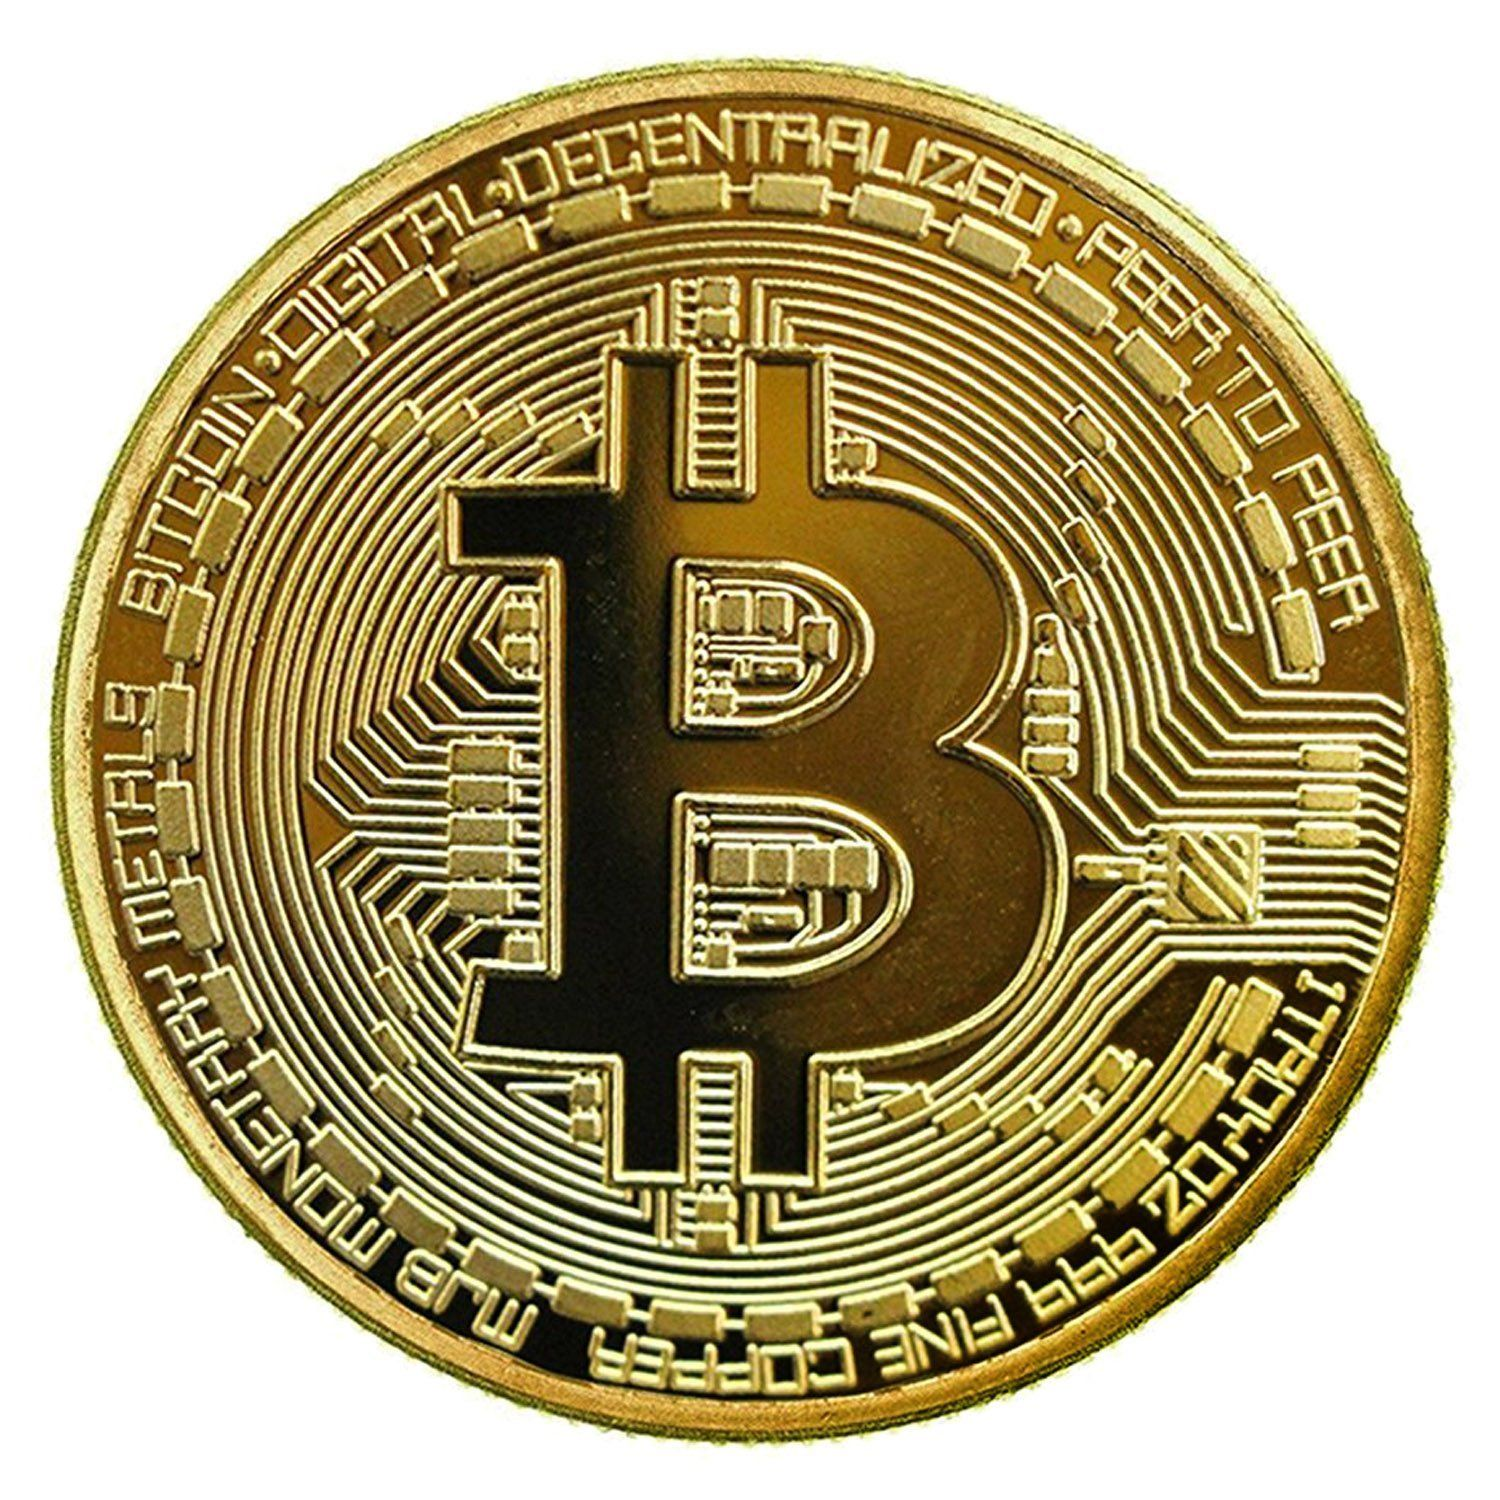 Gold Plated Bitcoin Coin Litecoin Cpu Miner Download